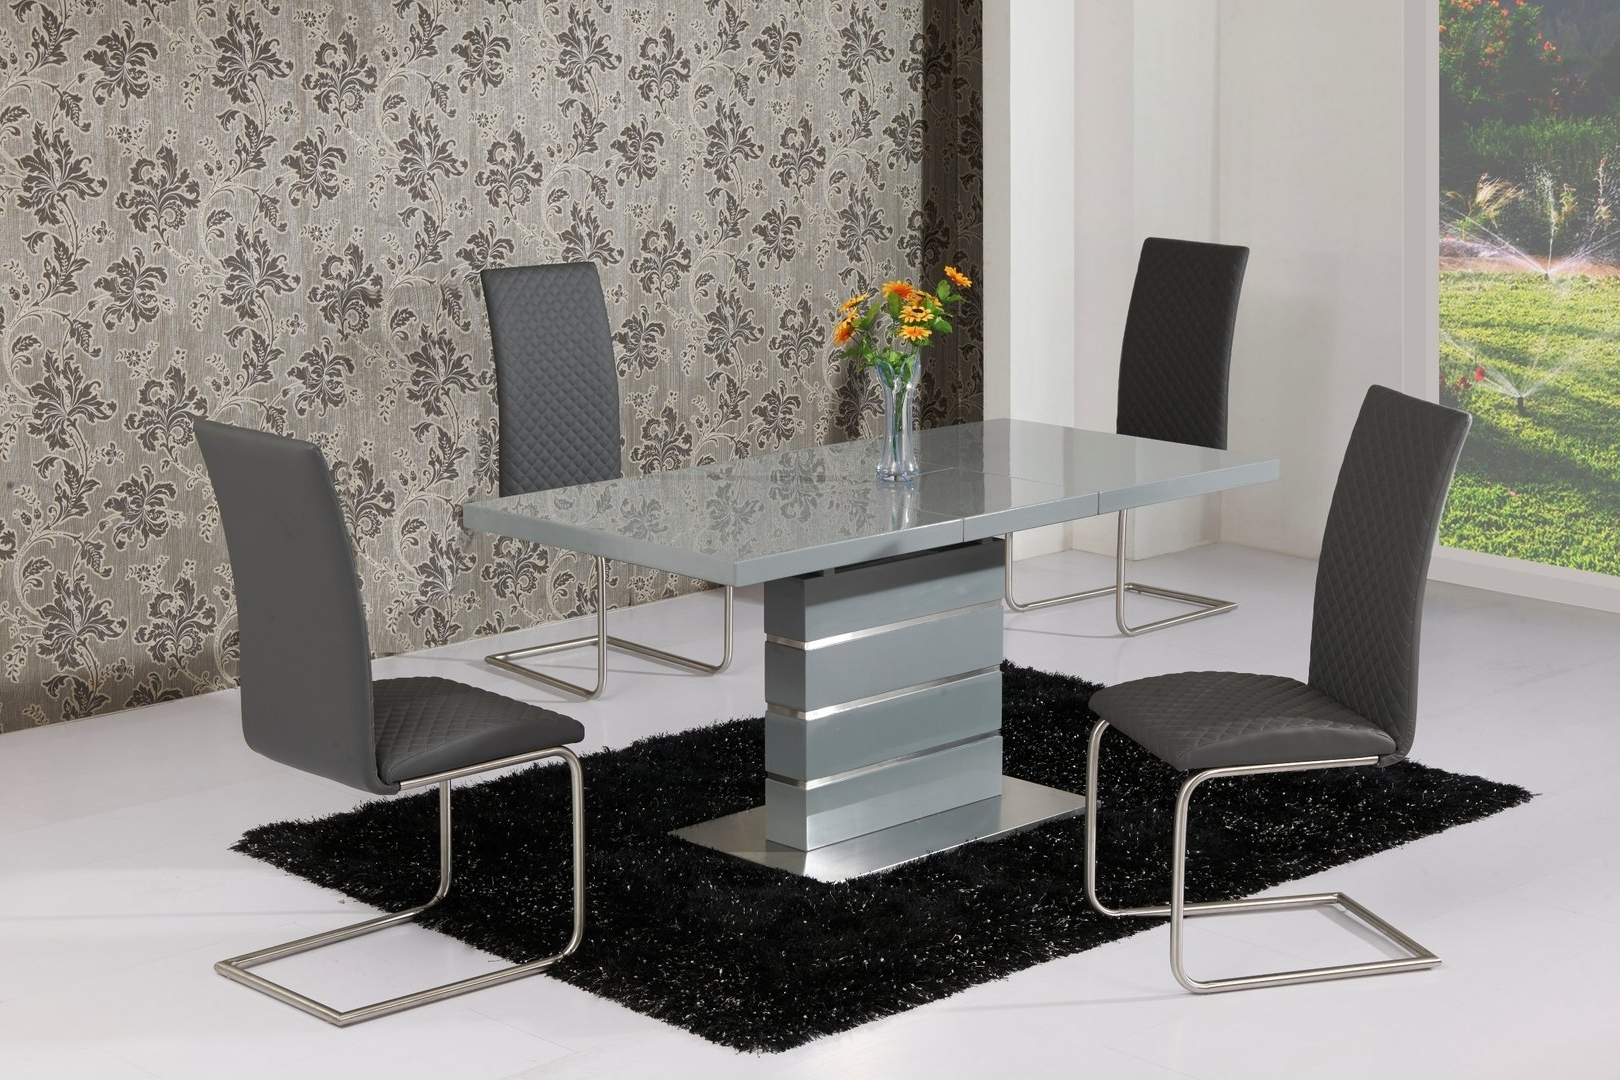 High Gloss Dining Sets Throughout Well Known Extending Grey High Gloss Dining Table And 4 Grey Chairs (Gallery 5 of 25)